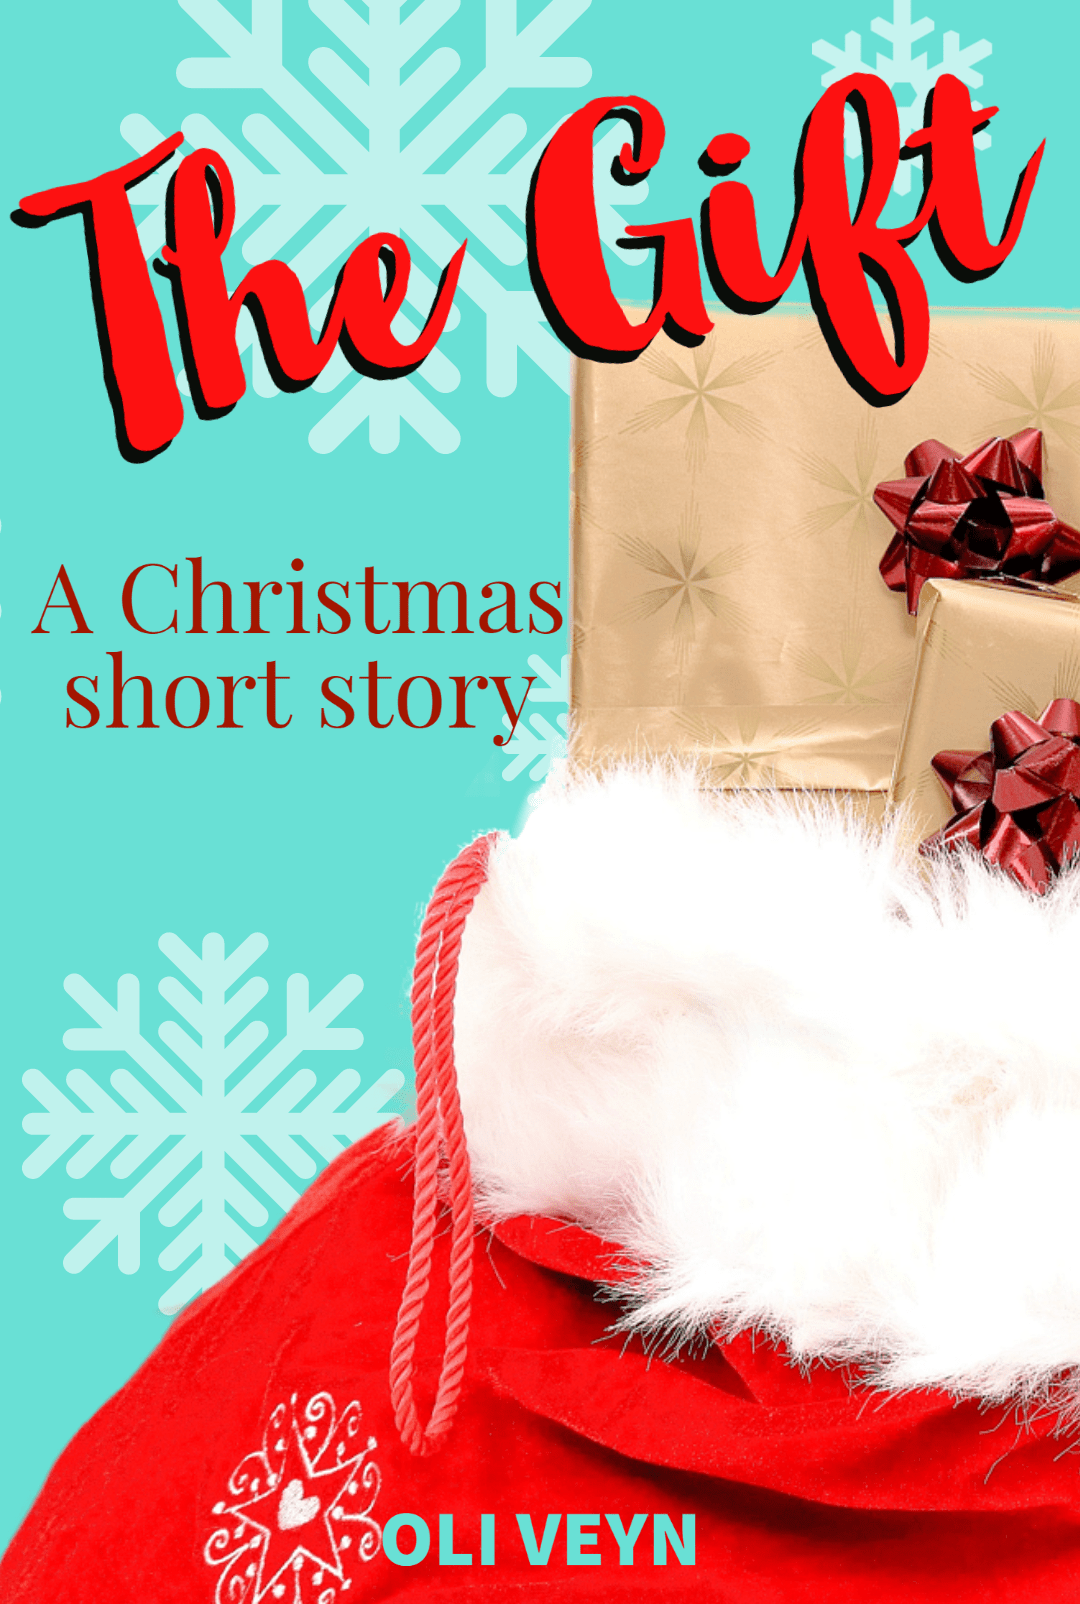 the gift x-mas cover new